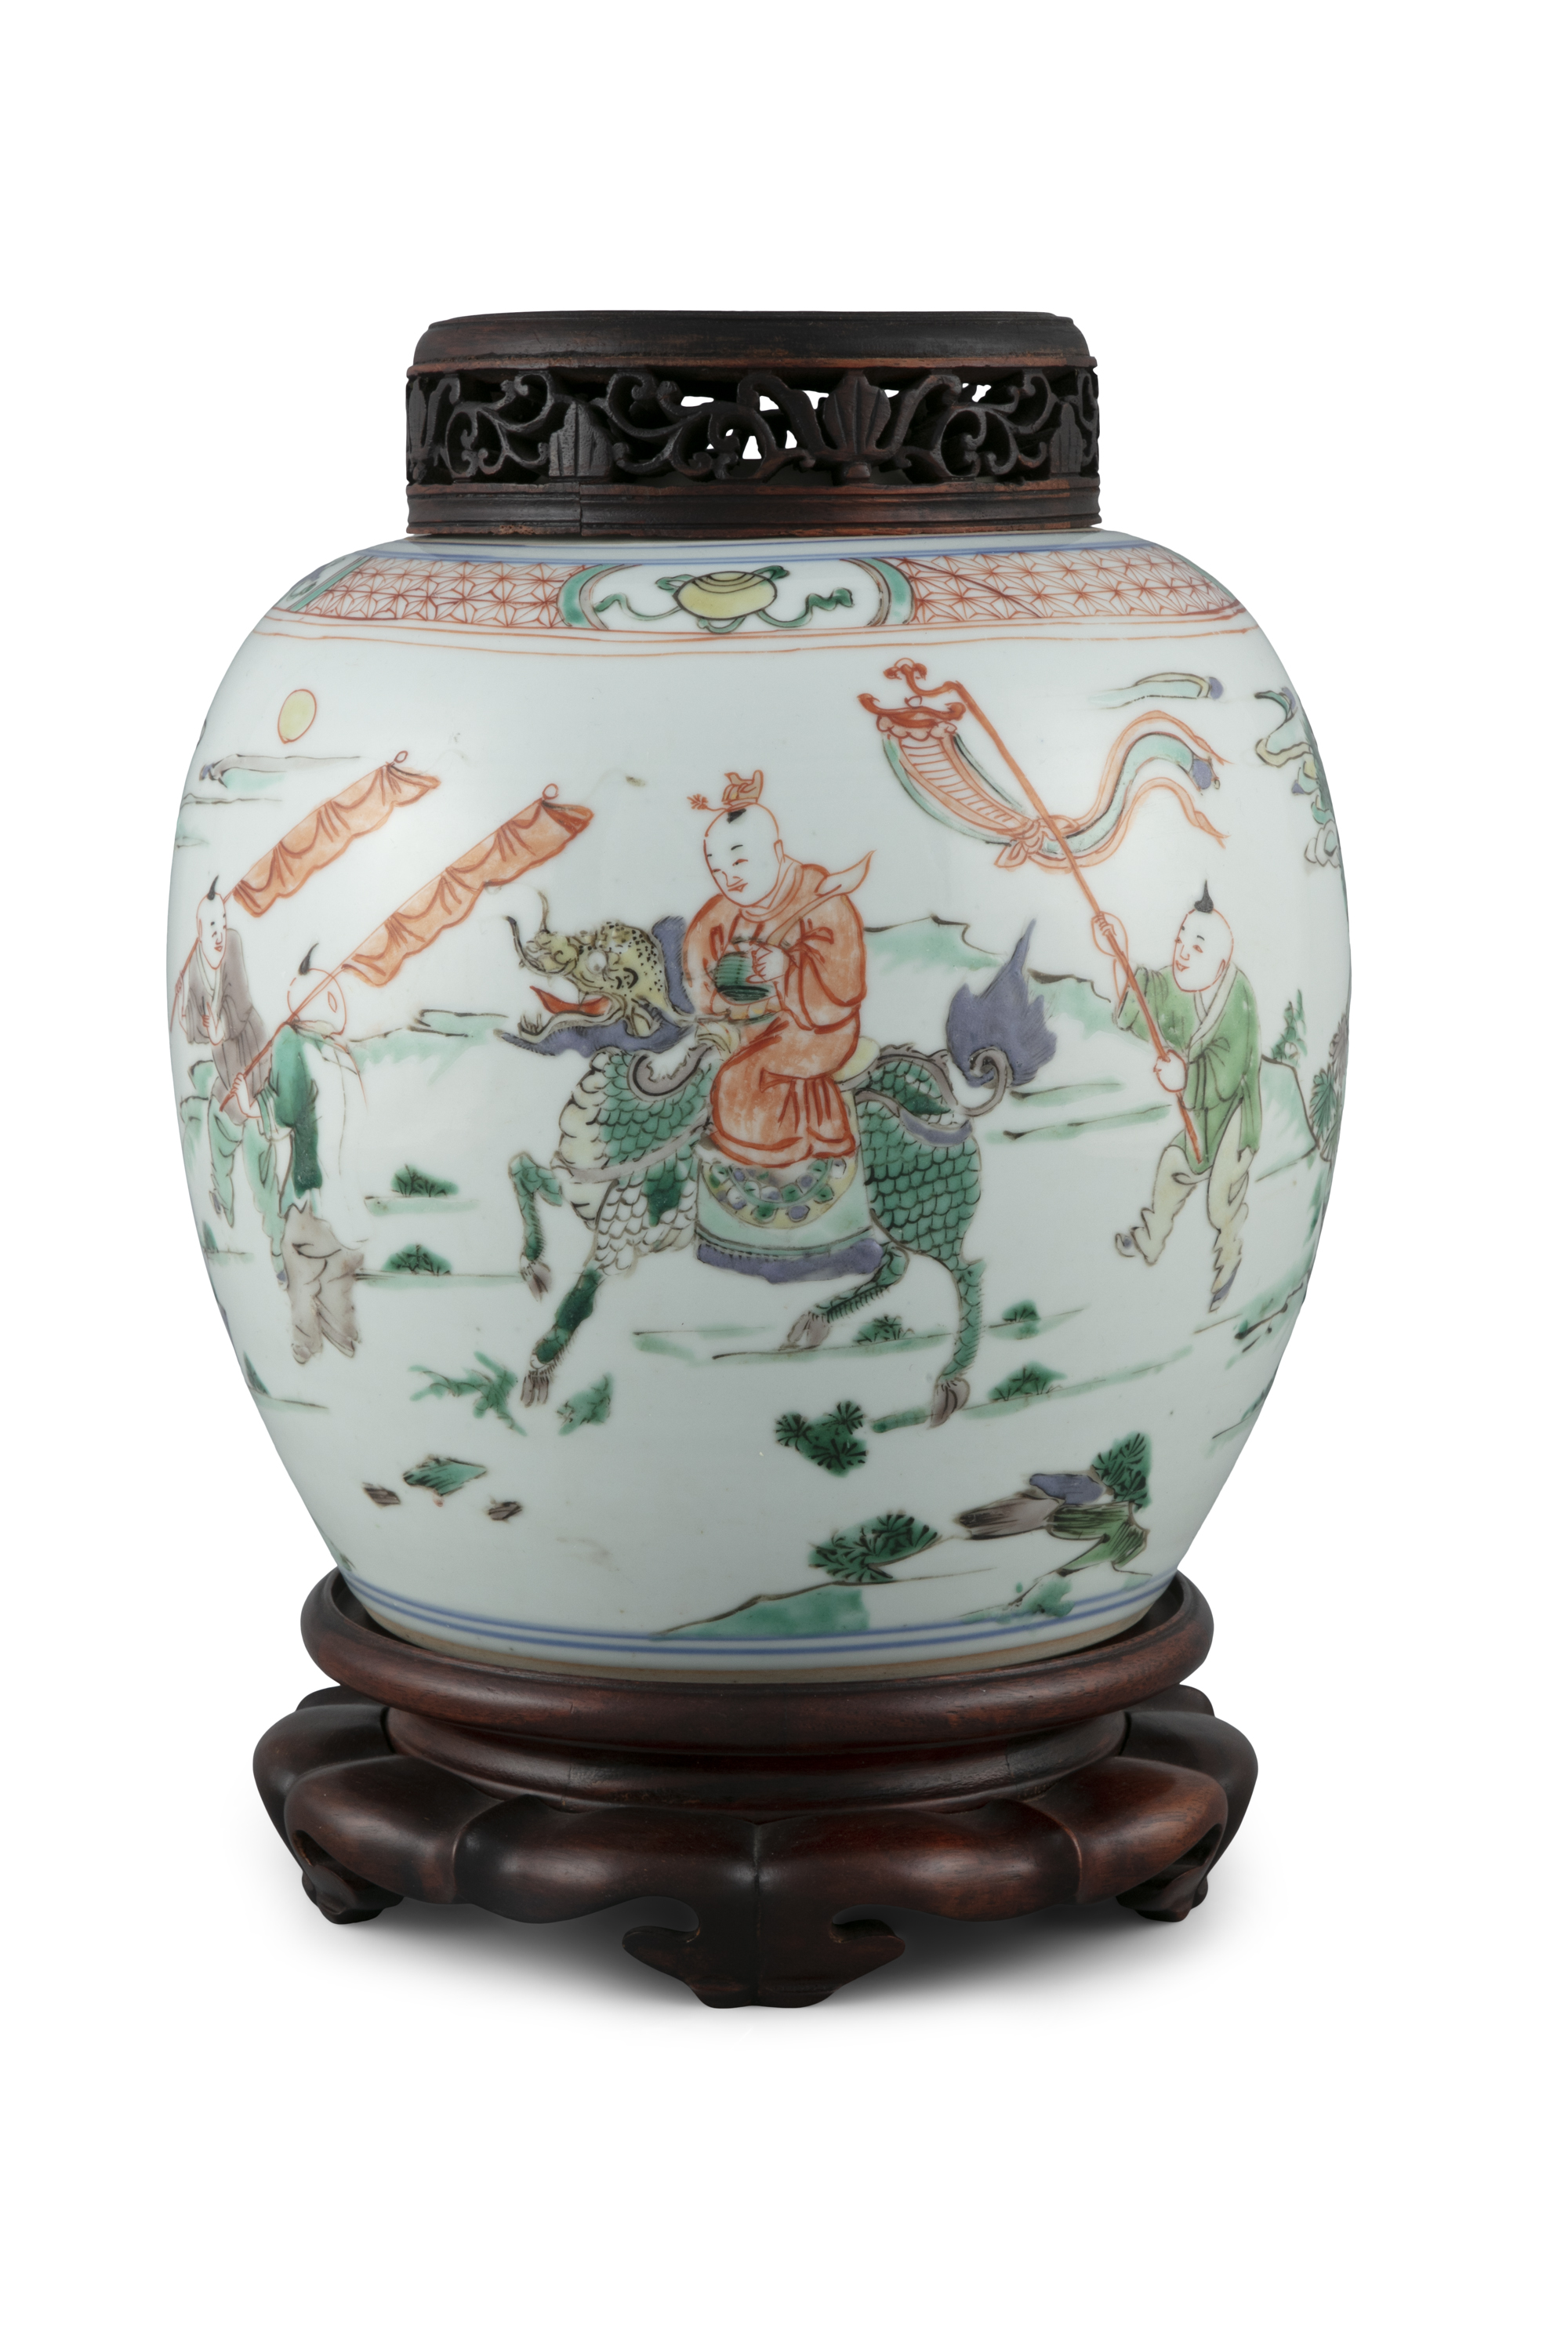 A FAMILLE VERTE 'BOY AND QILIN' PORCELAIN GINGER JAR China, Qing Dynasty, Kangxi period Adorned in